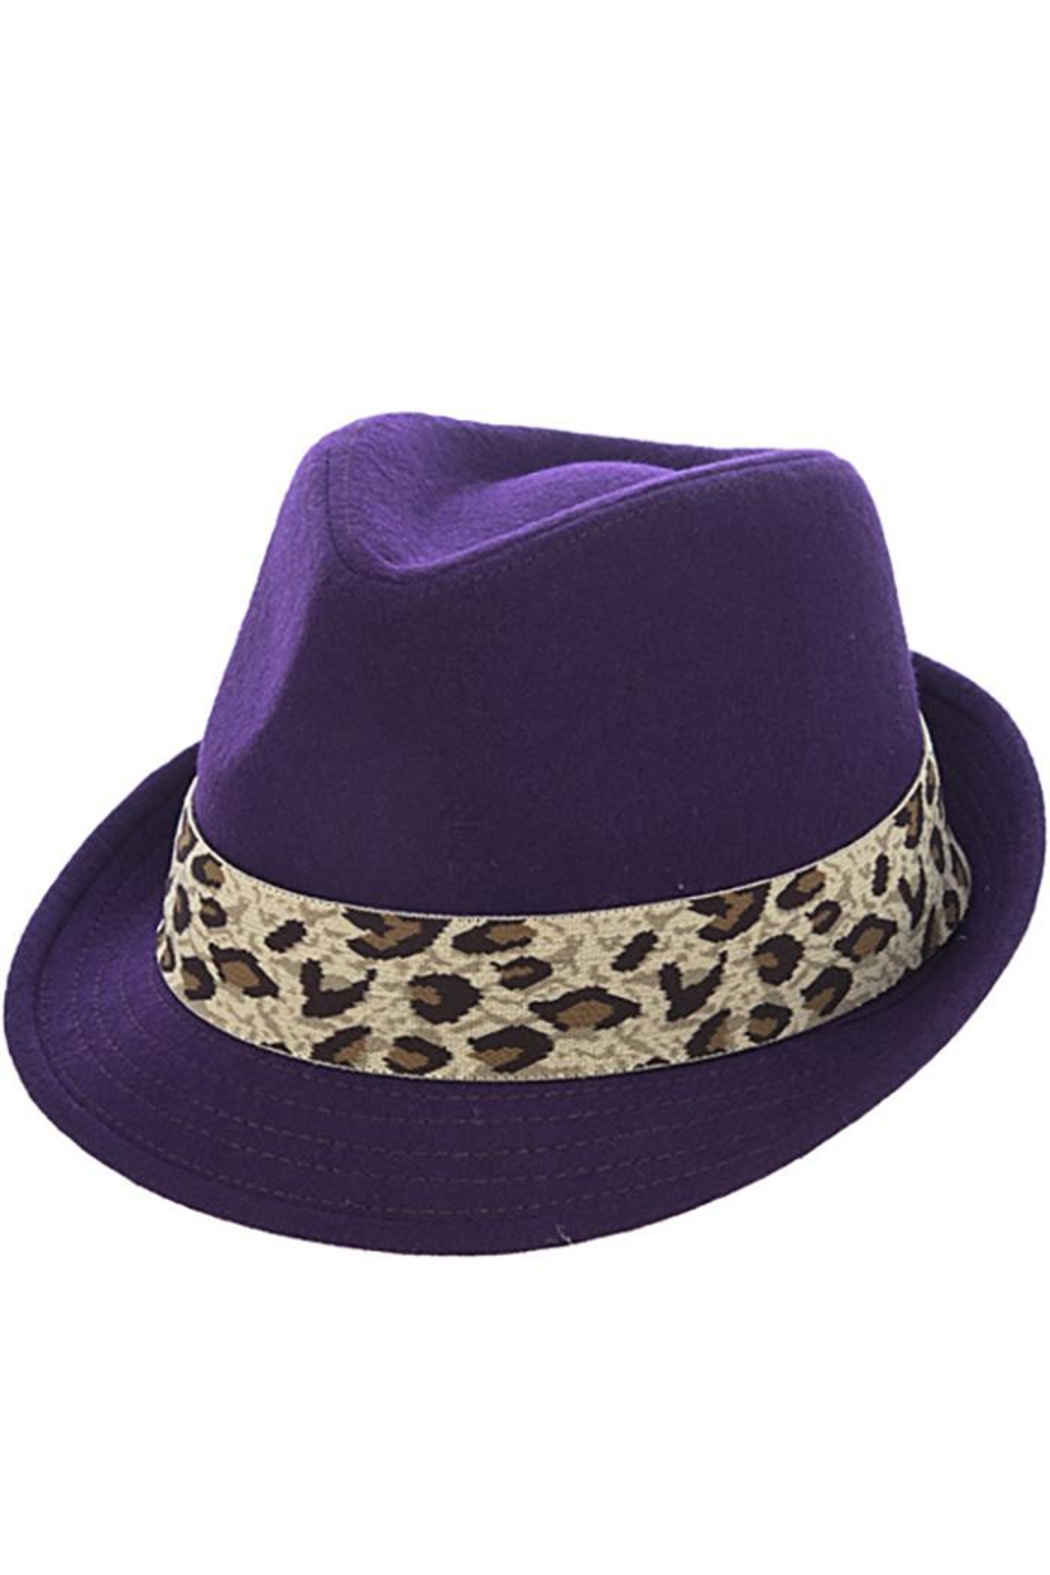 The Hatter Company Leopard Print Band-Fedora - Main Image